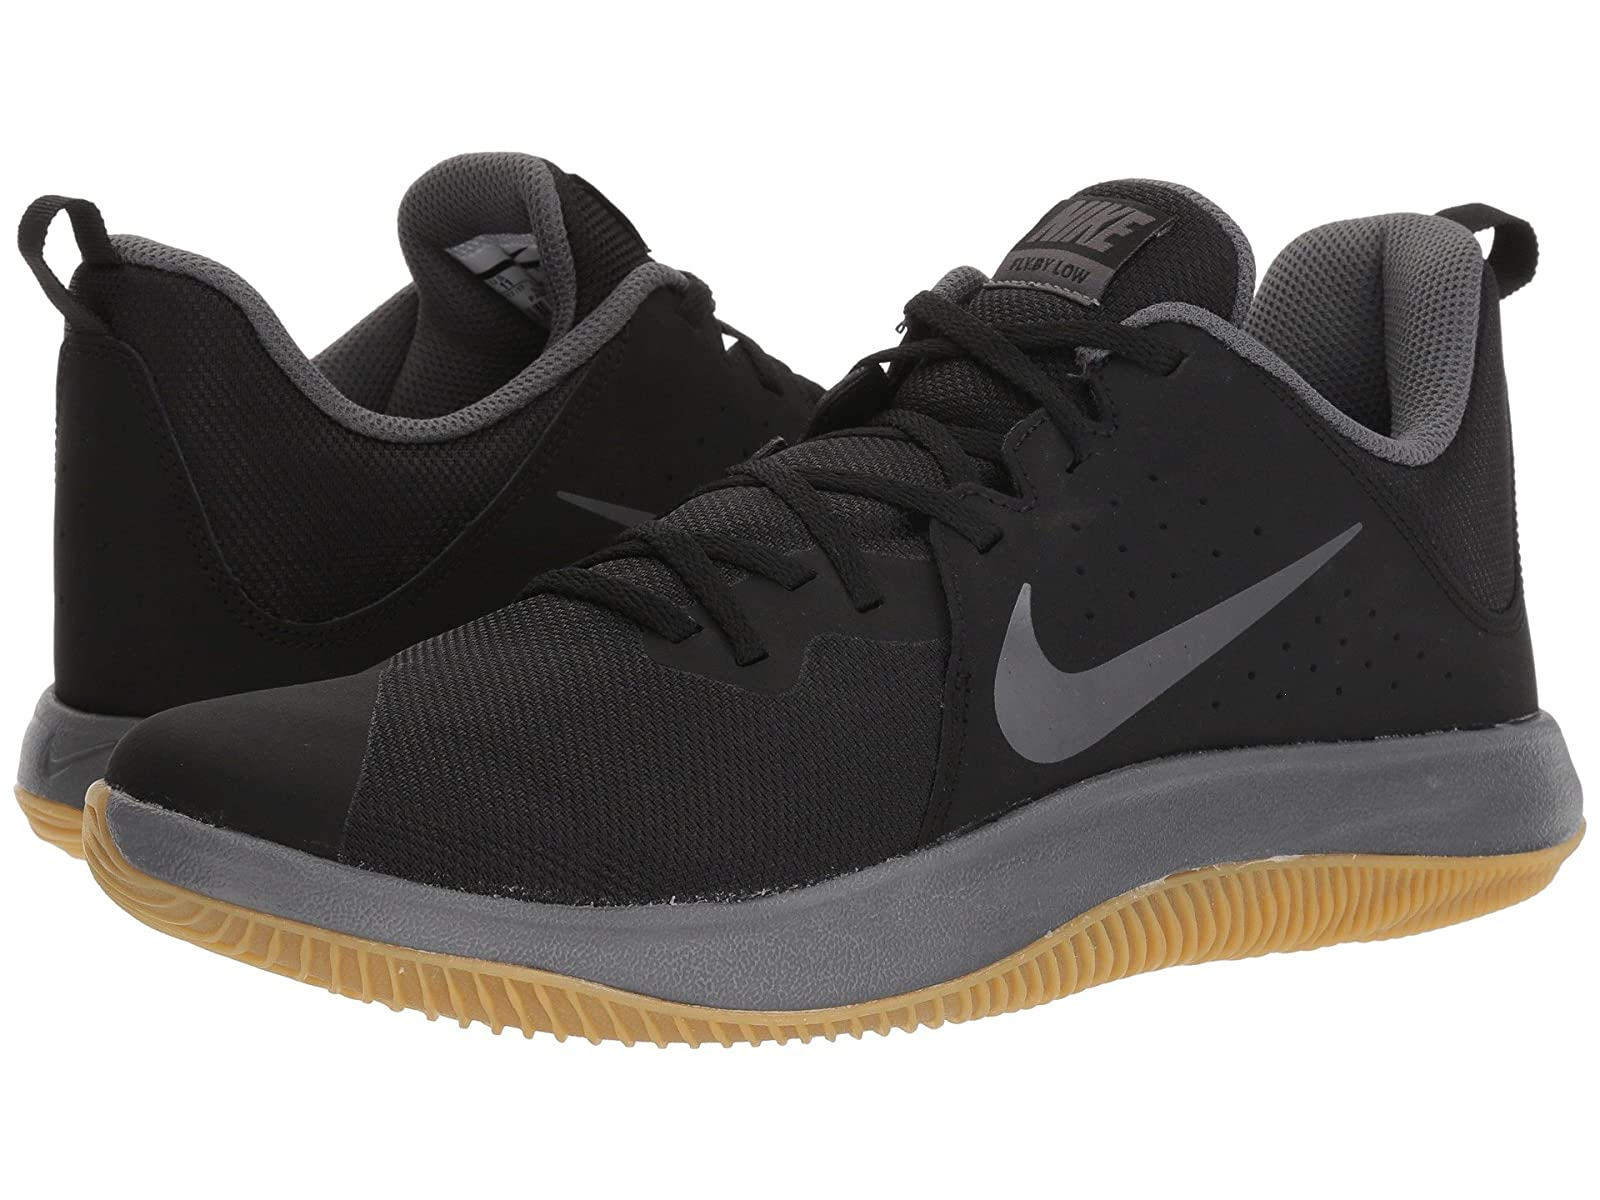 Nike Fly.By LowAtmospheric grades have affordable shoes